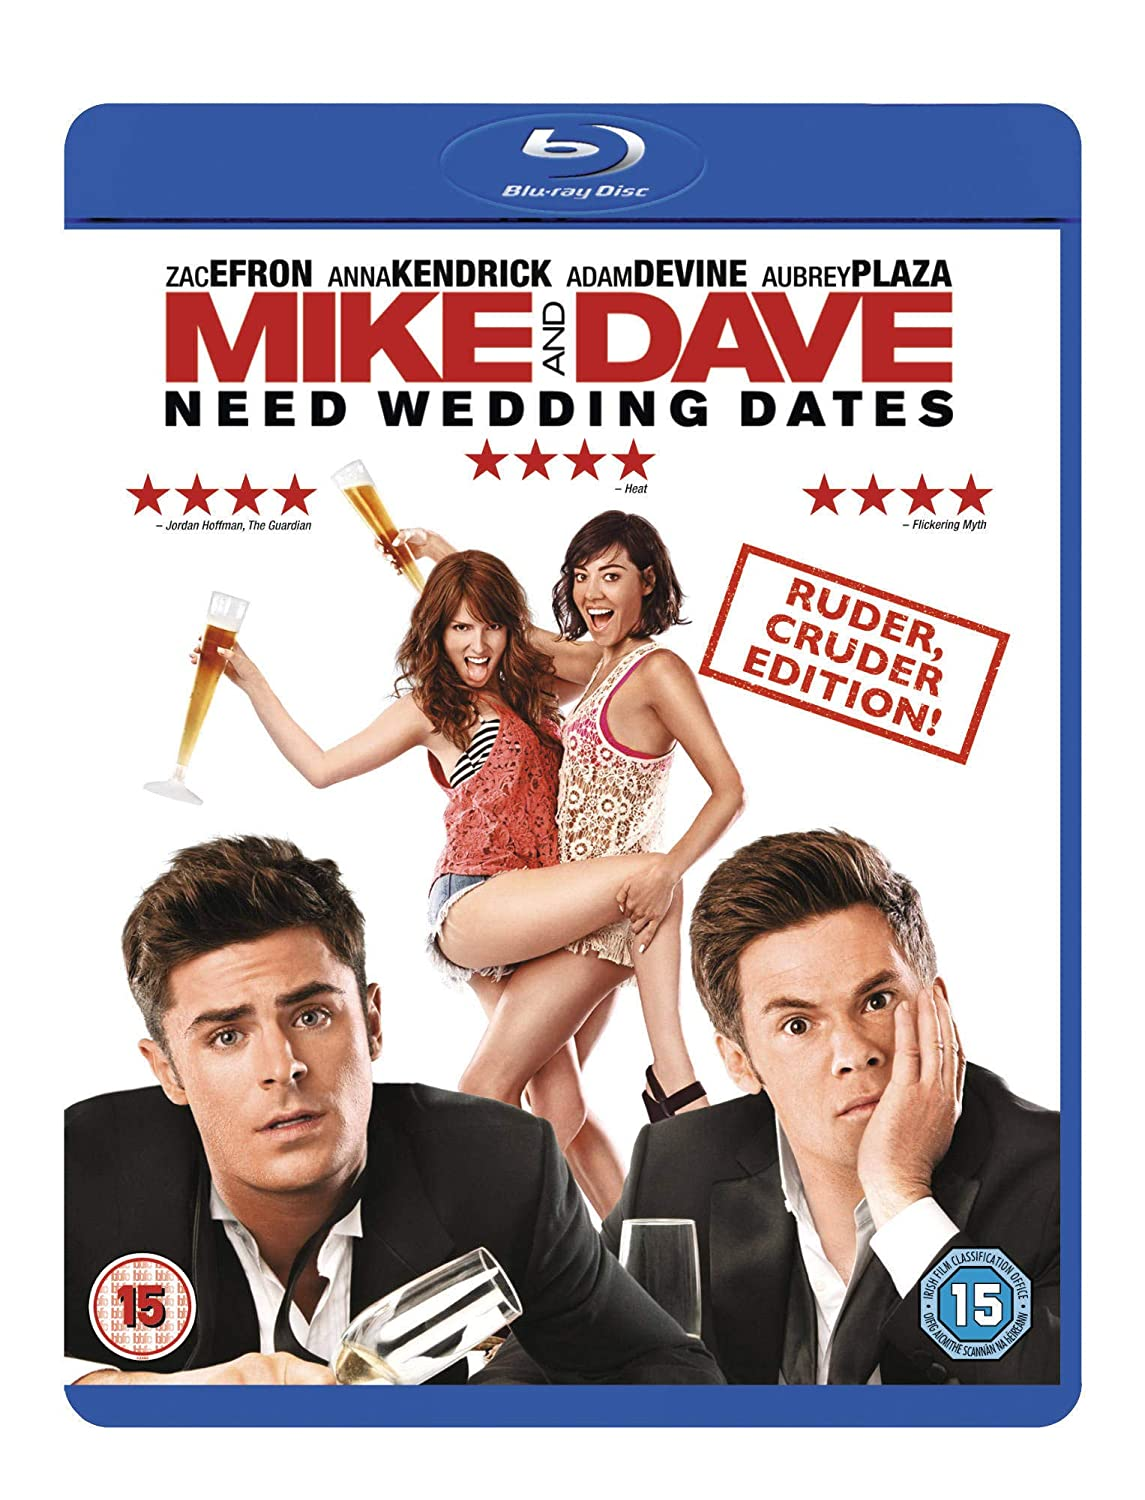 Mike And Dave Need Wedding Dates Online.Mike Dave Need Wedding Dates Blu Ray Amazon Co Uk Zac